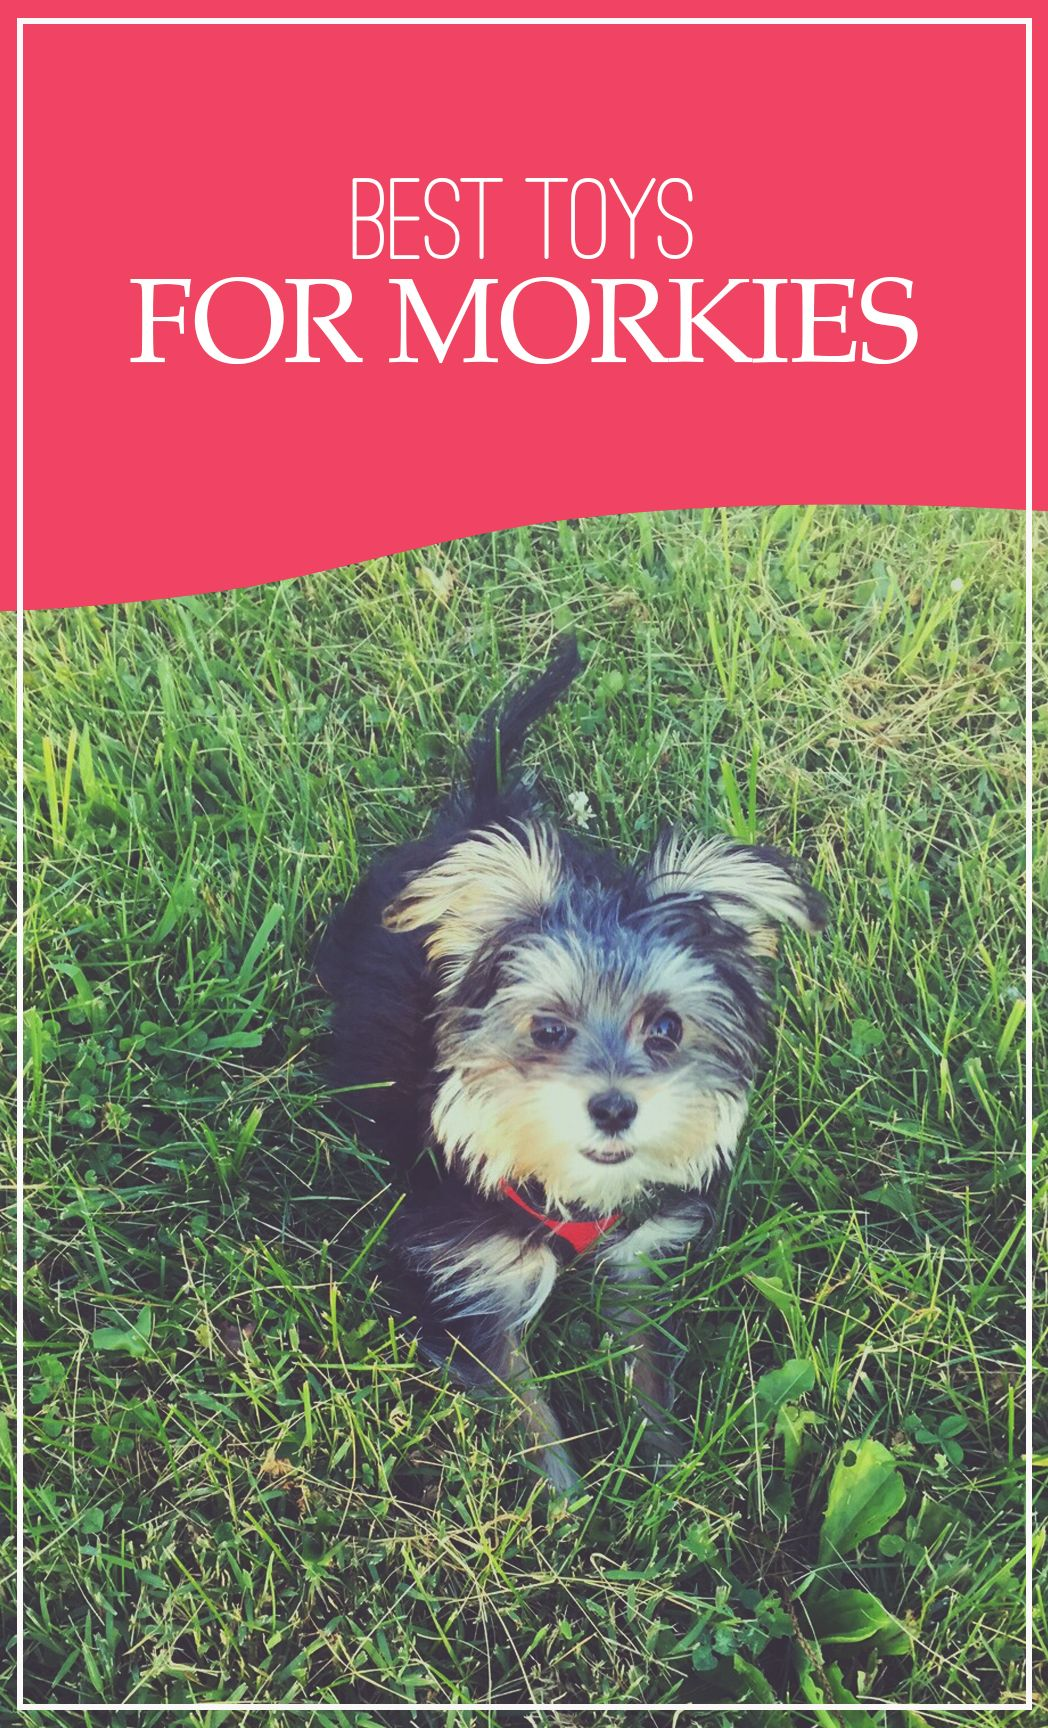 The Best Toys For Morkie Puppies Morkie Puppies Morkie Morkie Dogs